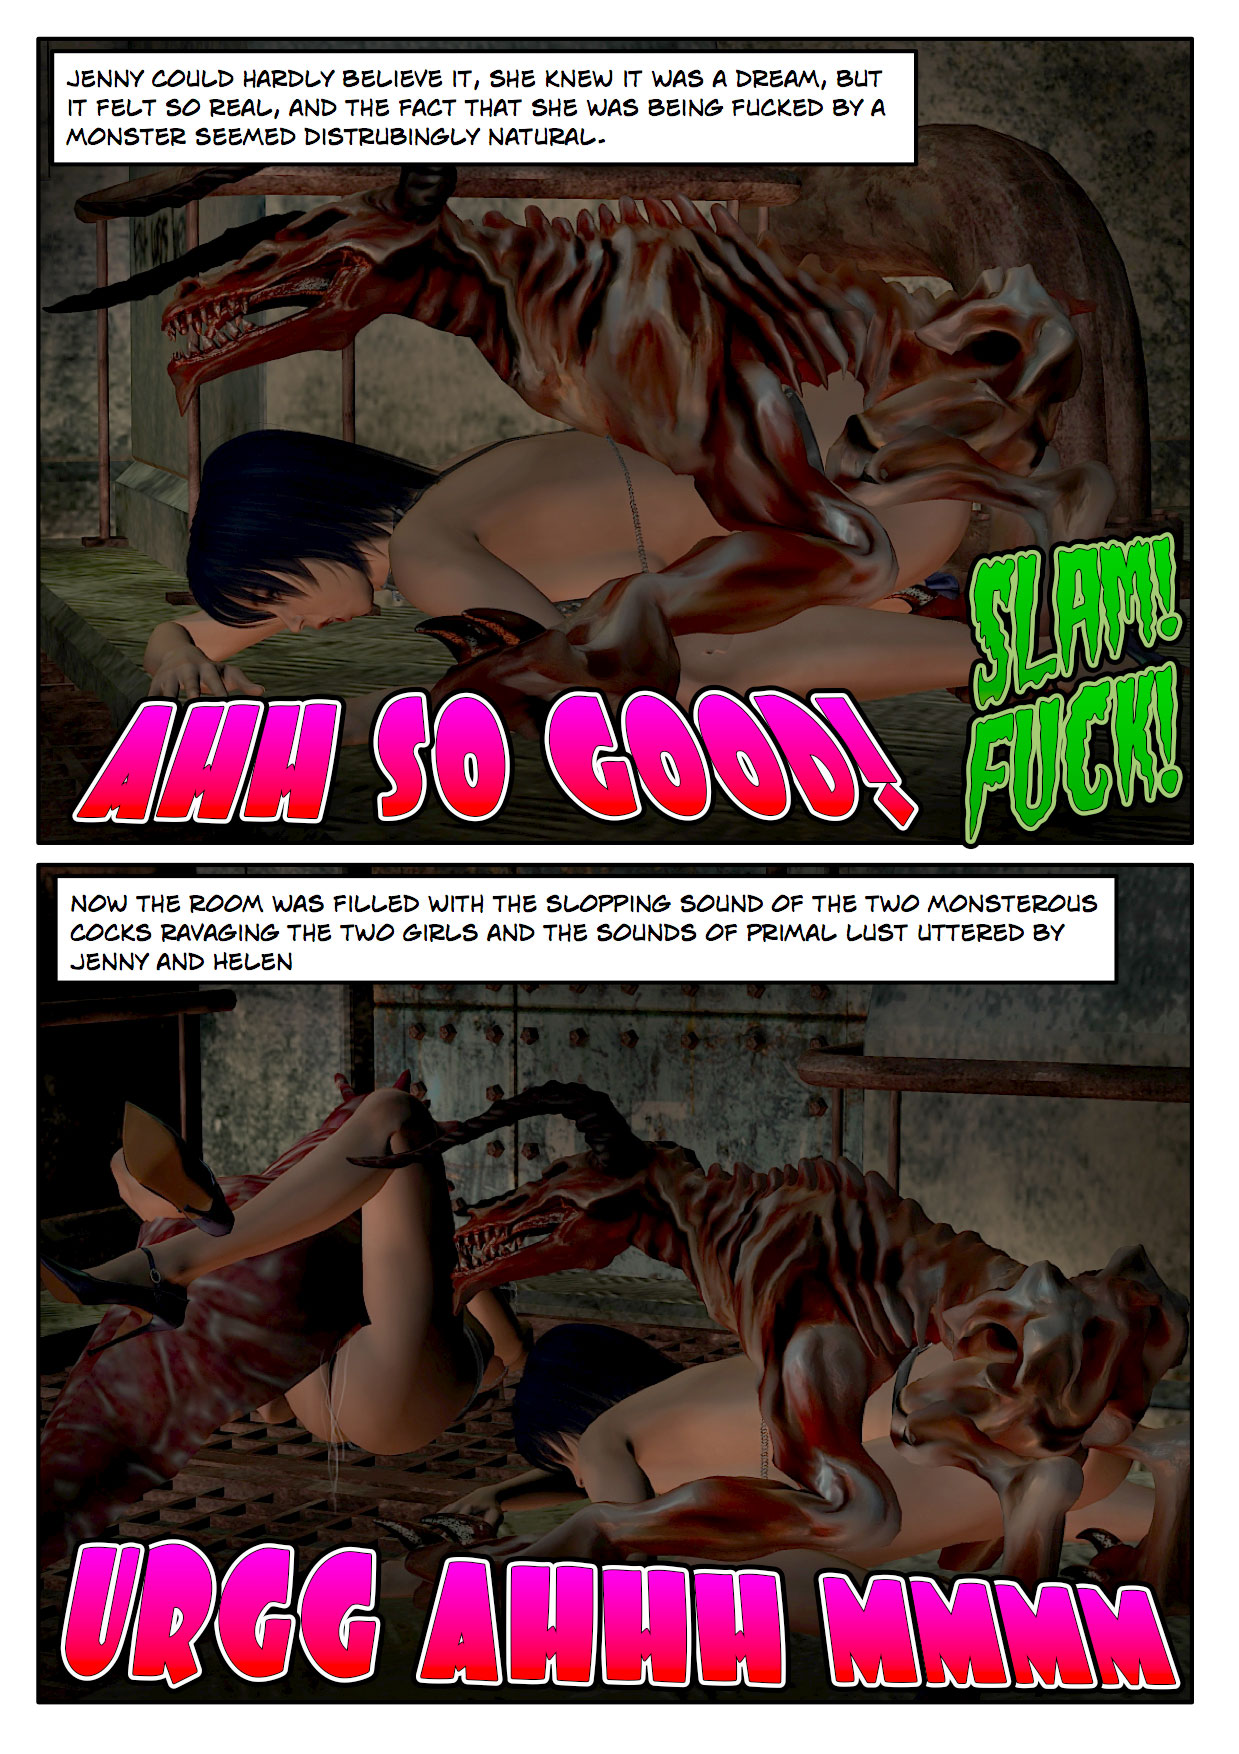 Monster fuck toon erotic scene